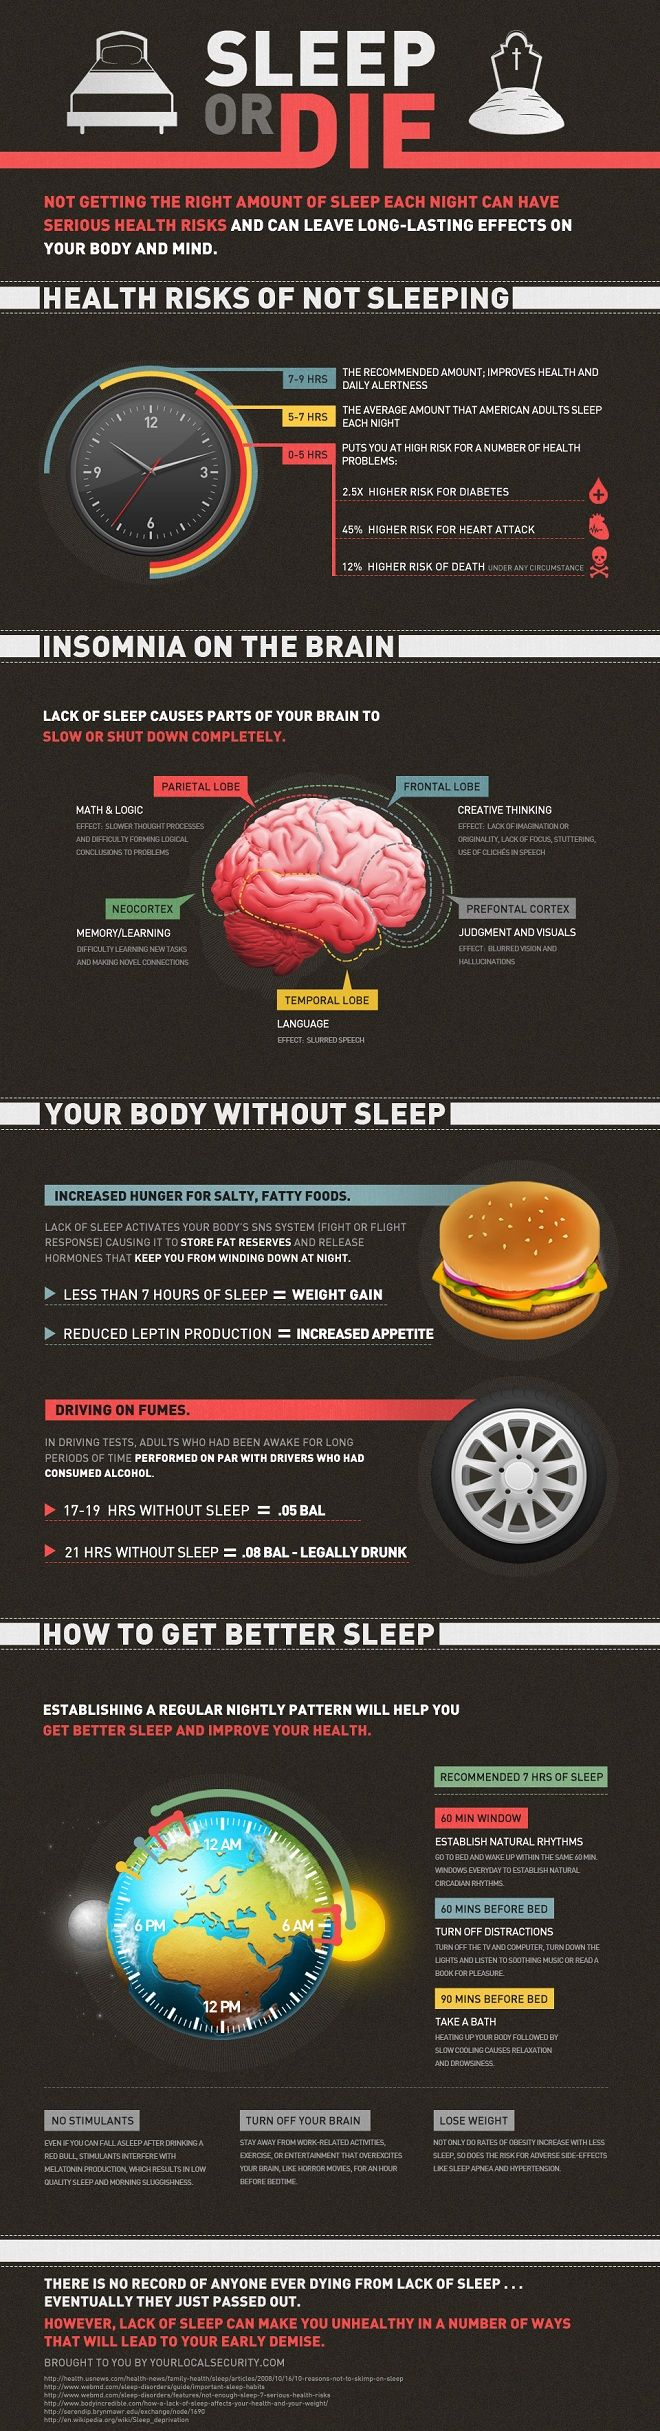 Love this graphic. Sleep is so important!: Health Info,  Internet Site,  Website, Stuff, Web Site, Health Risks, Sleep Deprivation, Infographic, Healthy Living